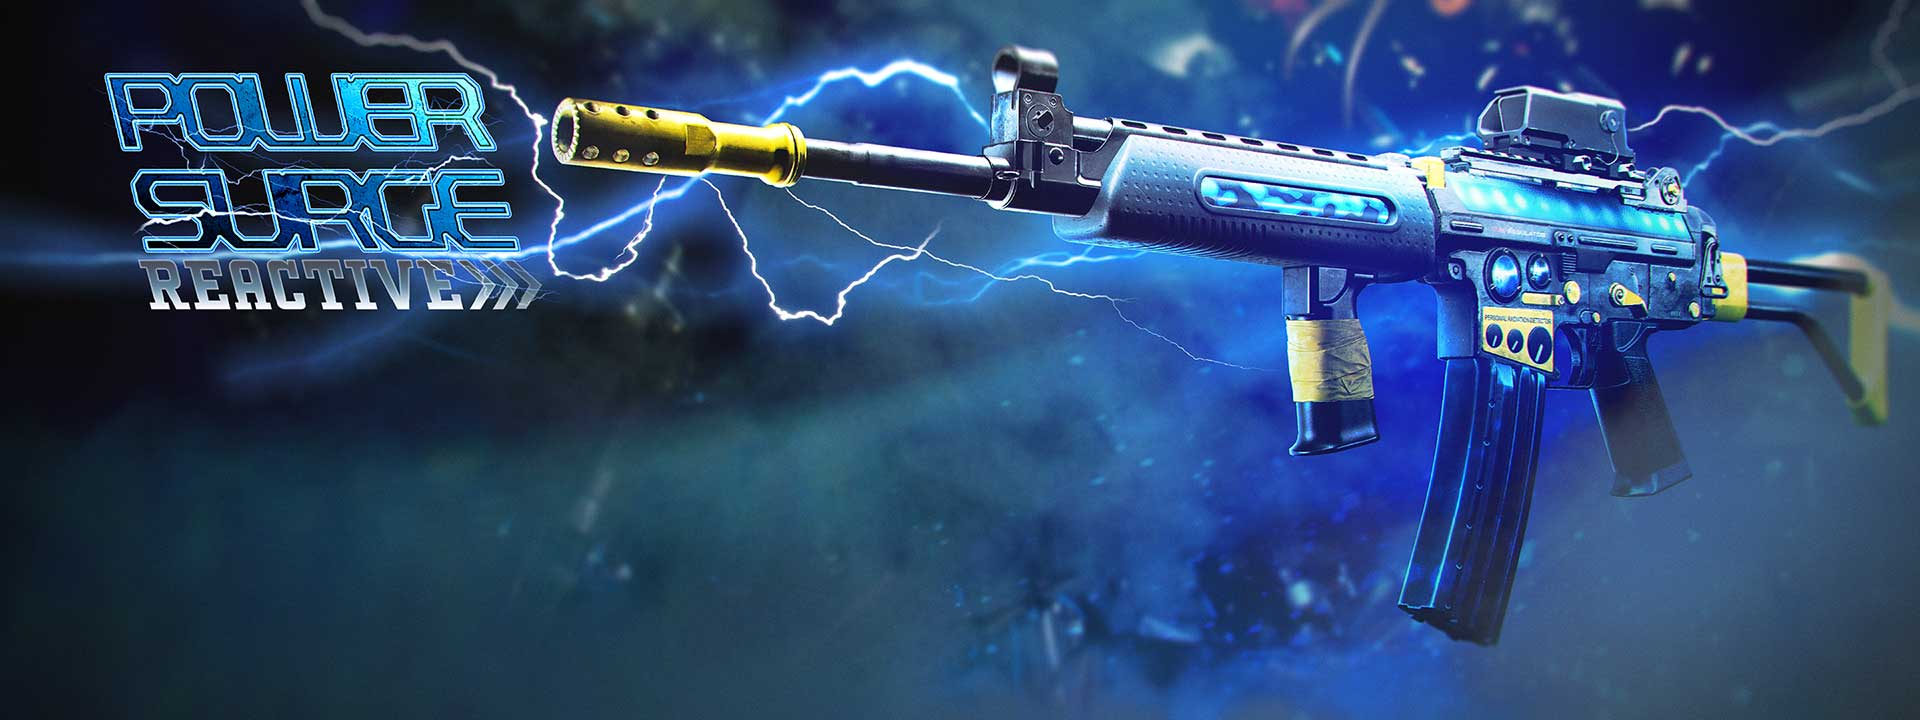 A kilowhopper assault rifle with lightning flashing behind it